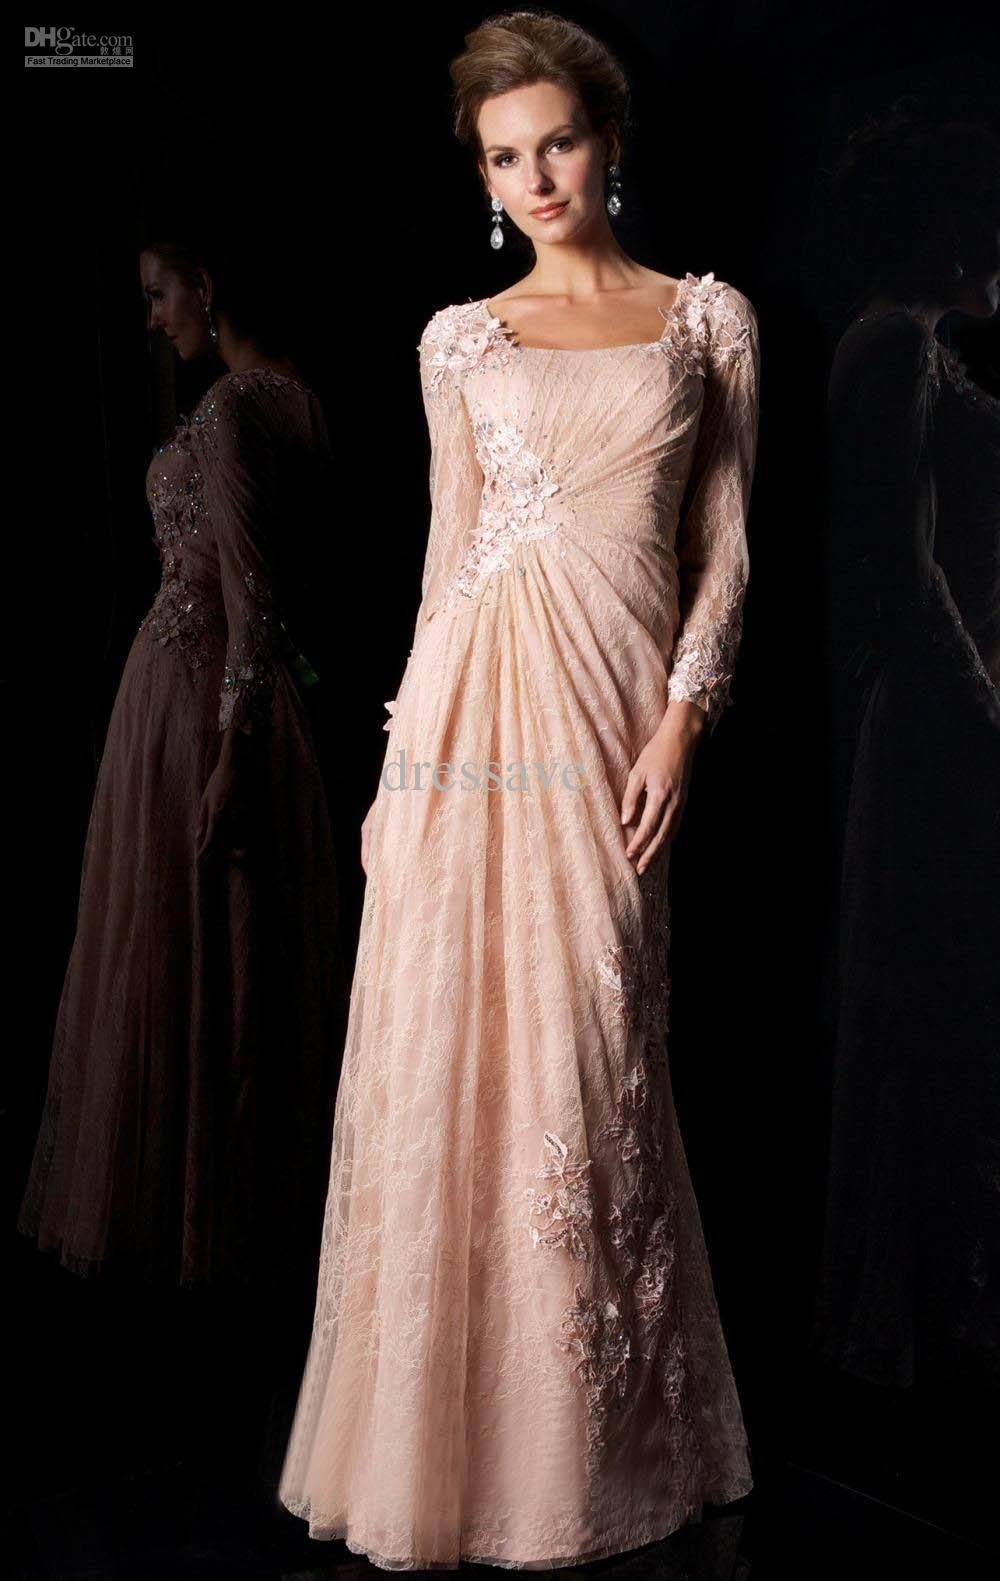 7868249f02 Wholesale Mother of the Bride Dresses - Buy 2013 Prom Dresses New Long  Sleeve Lace Applique Sheath Mather of Bridemaid Dresses two Style W034